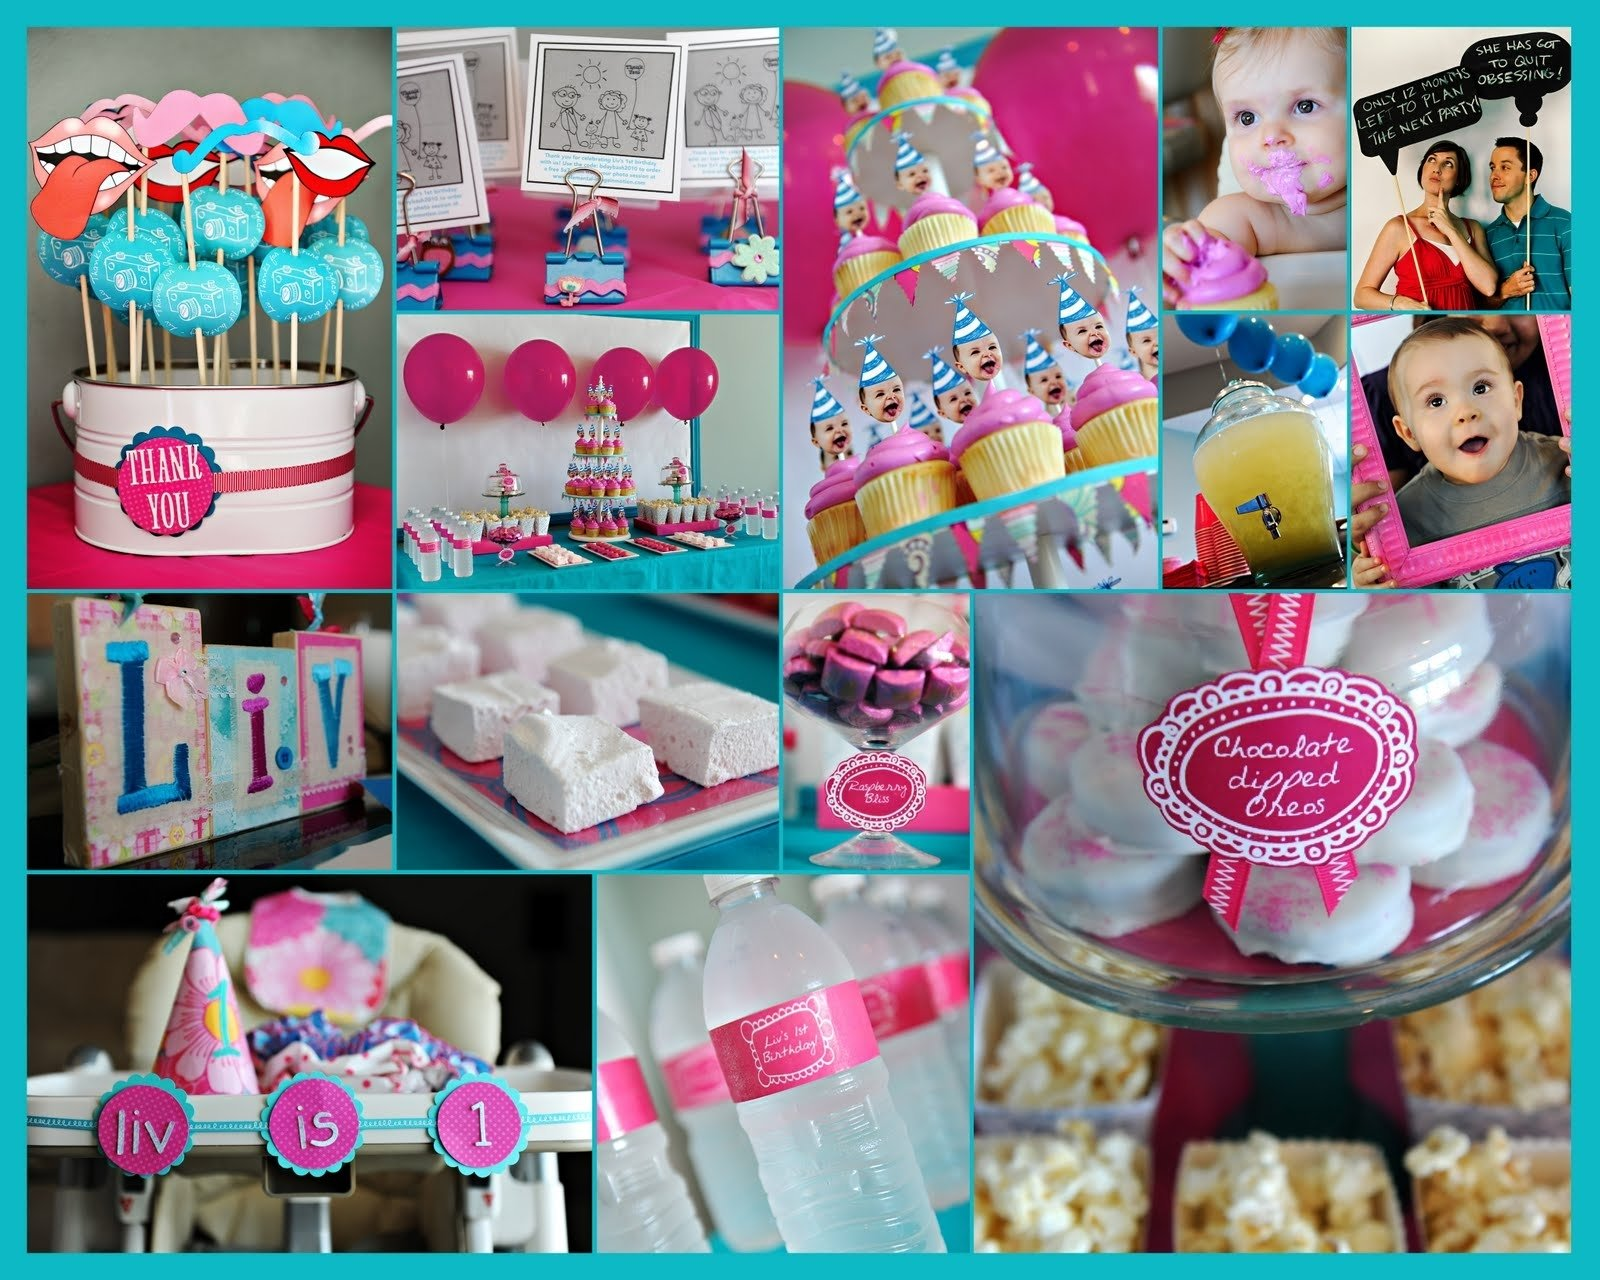 10 Nice 13 Year Old Birthday Party Ideas For Girls elle belle creative one year old in a flash a first birthday party 30 2021